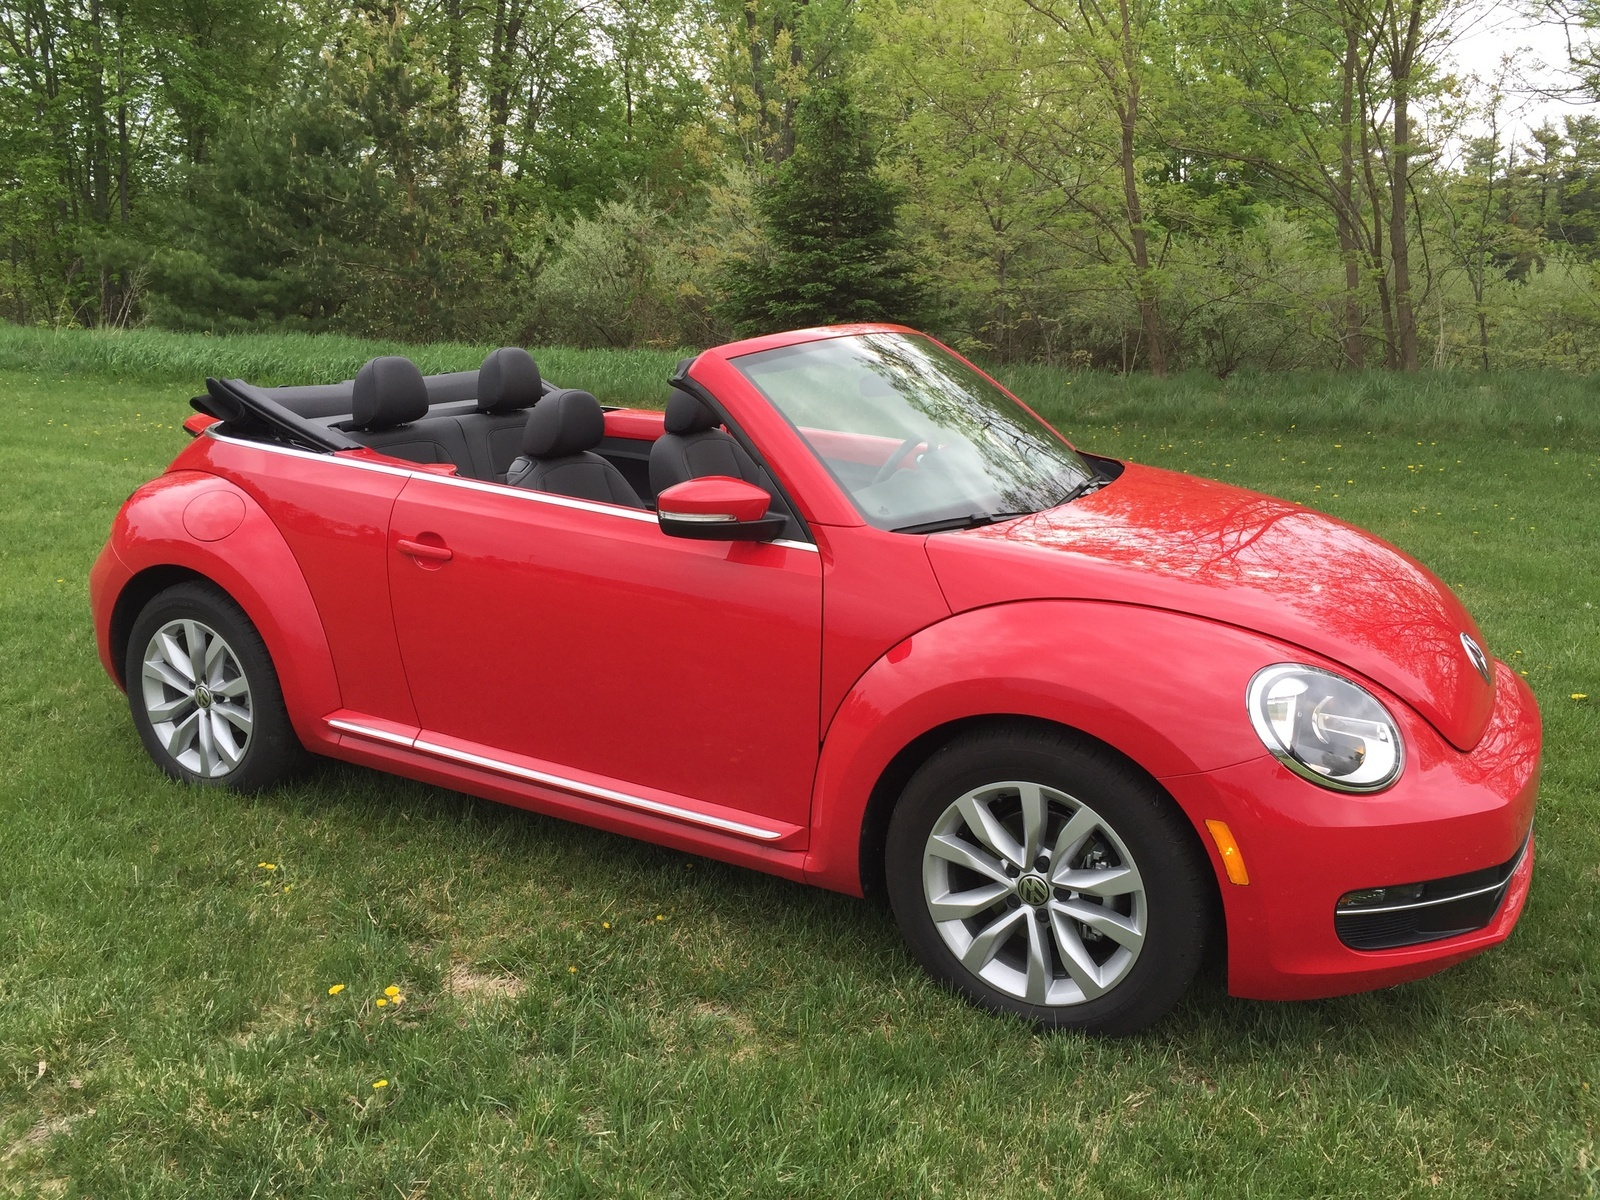 New 2015 Volkswagen Beetle For Sale - CarGurus